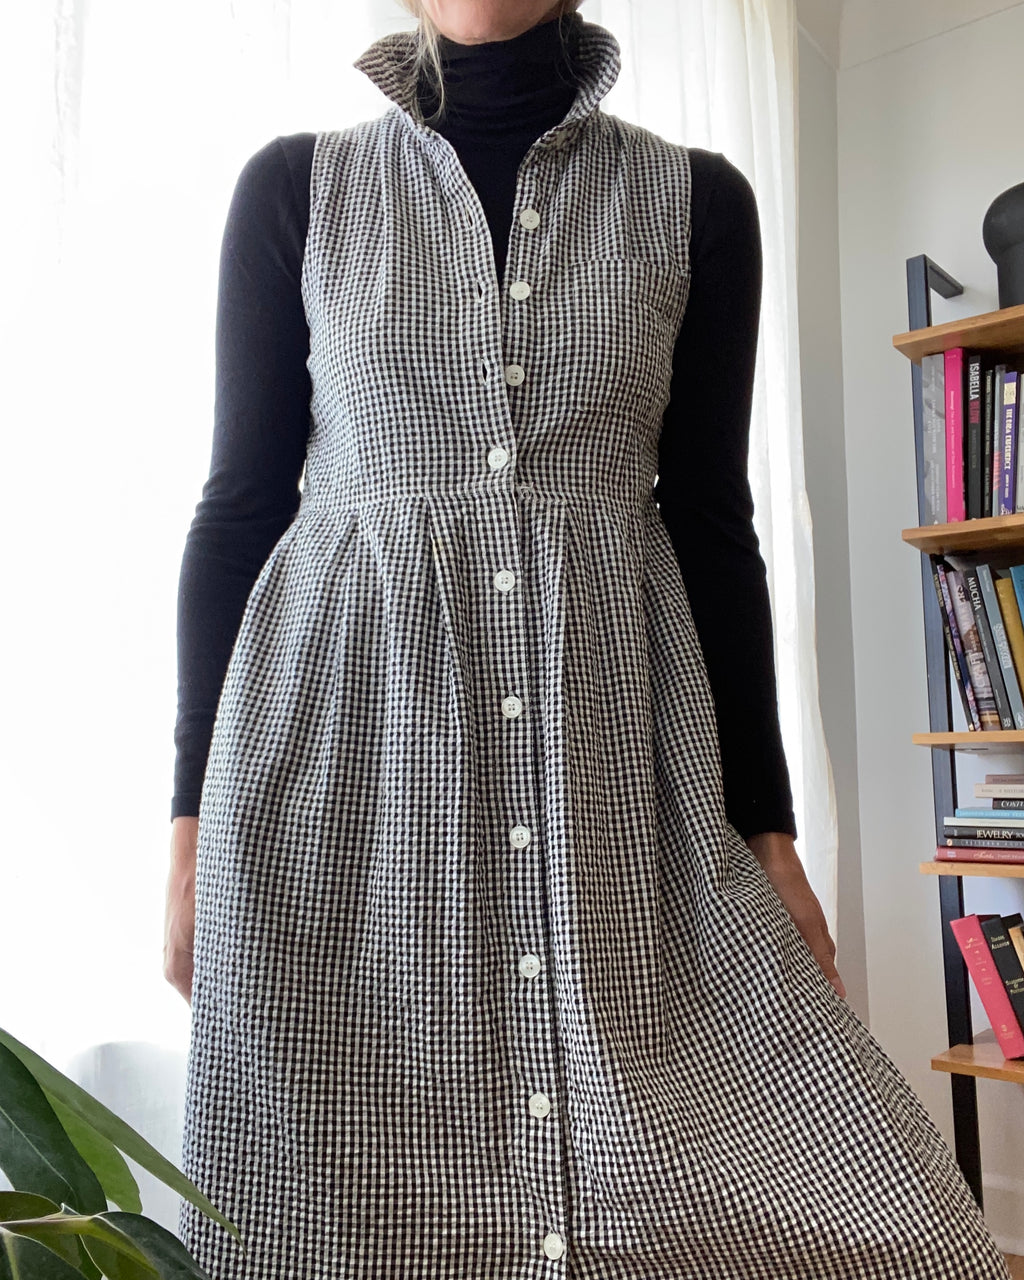 VINTAGE 90's Black and White Gingham Dress